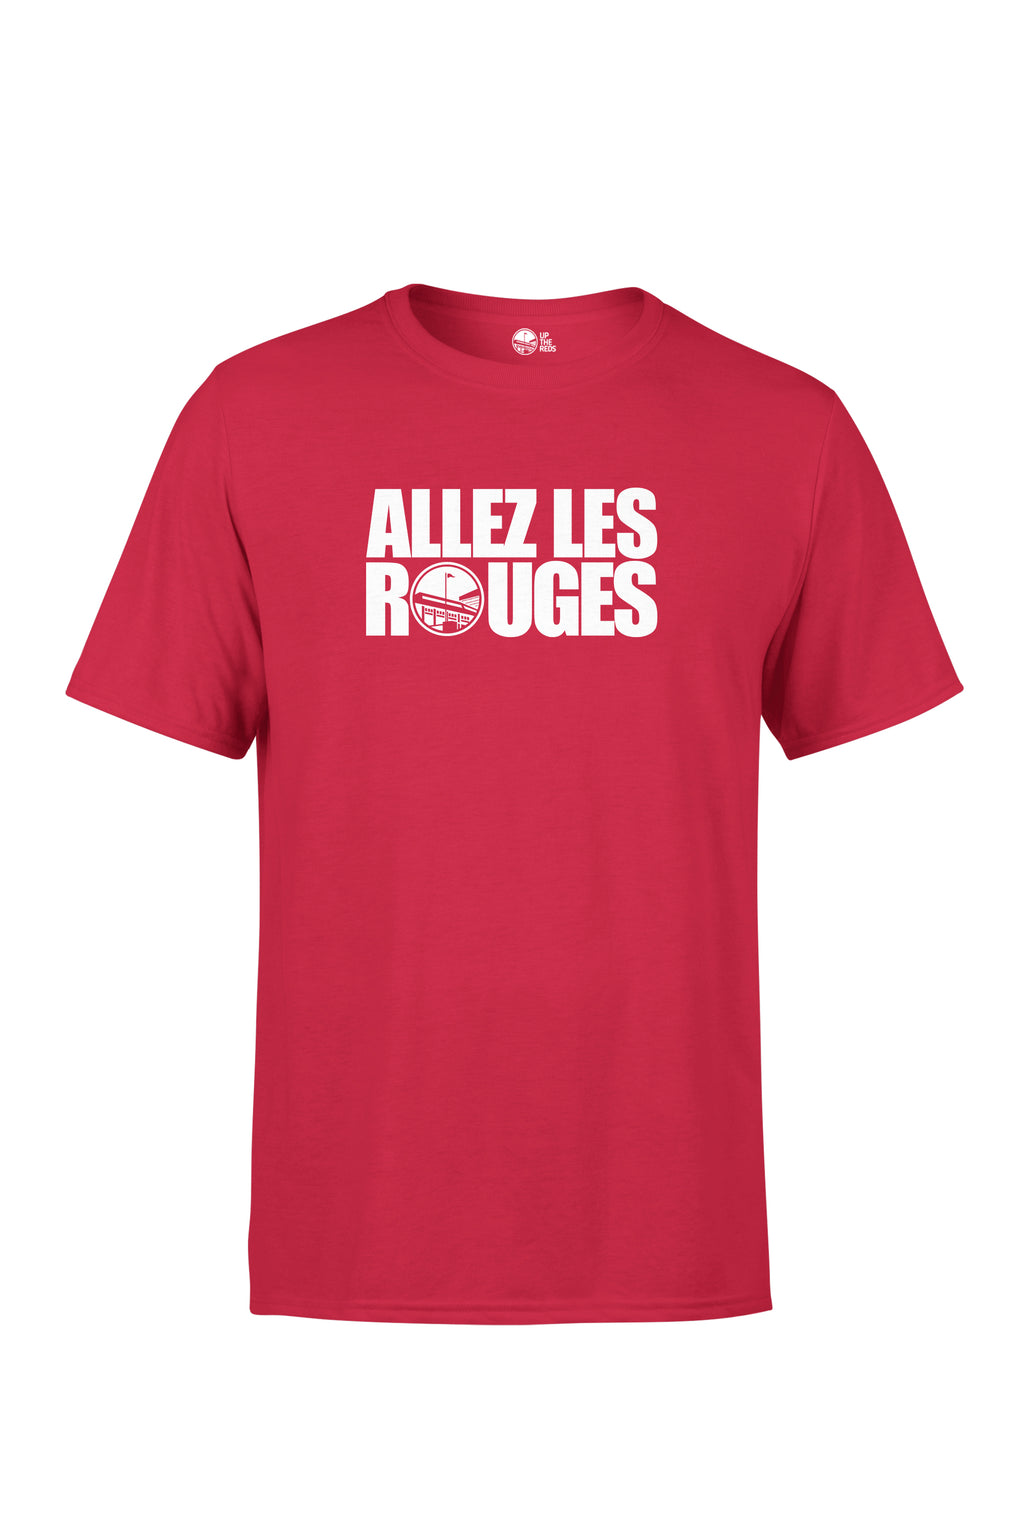 UTR - Allez Les Rouges (White Text)